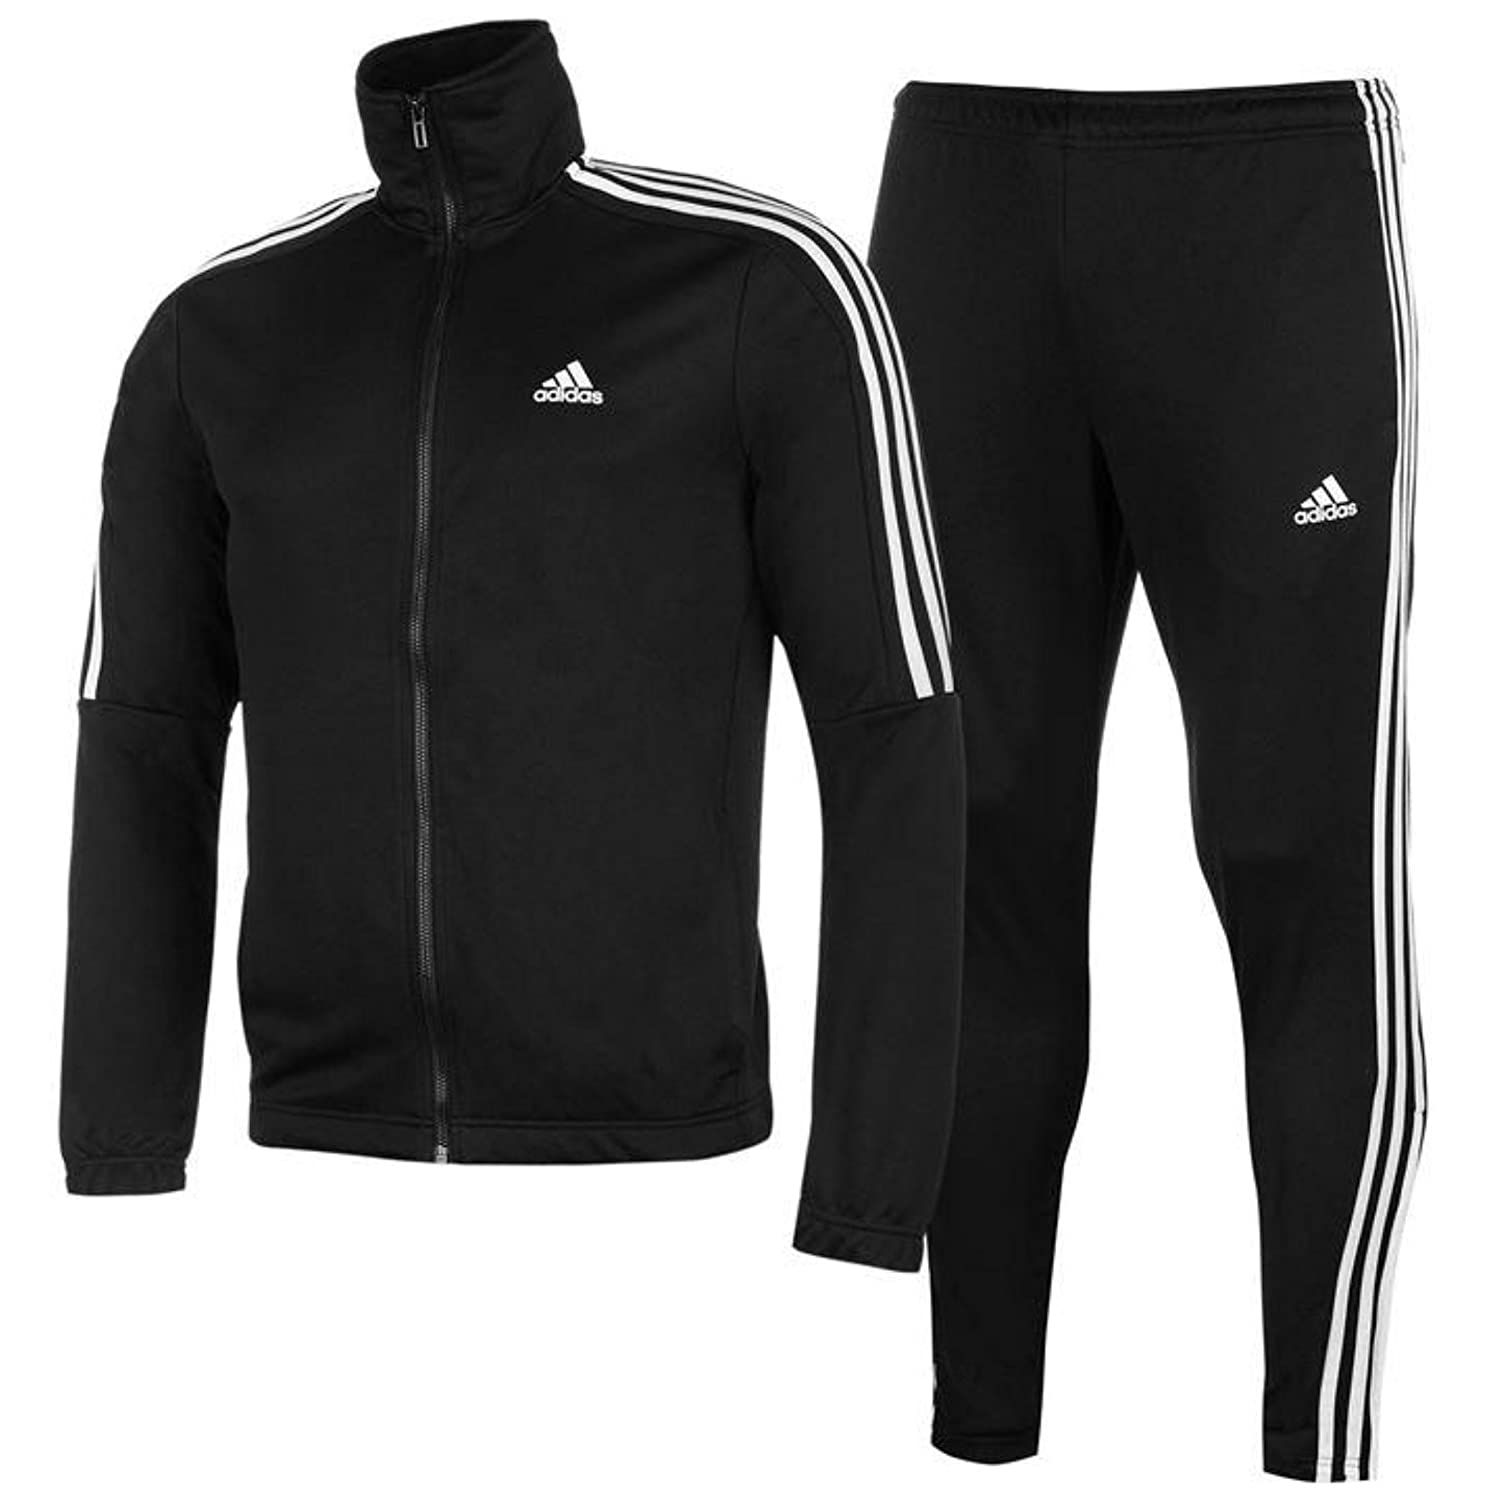 e8799e63 Amazon.com: adidas Men s Tiro Track Suit 3 Stripes Tracksuit Black/White  (2XL): Clothing